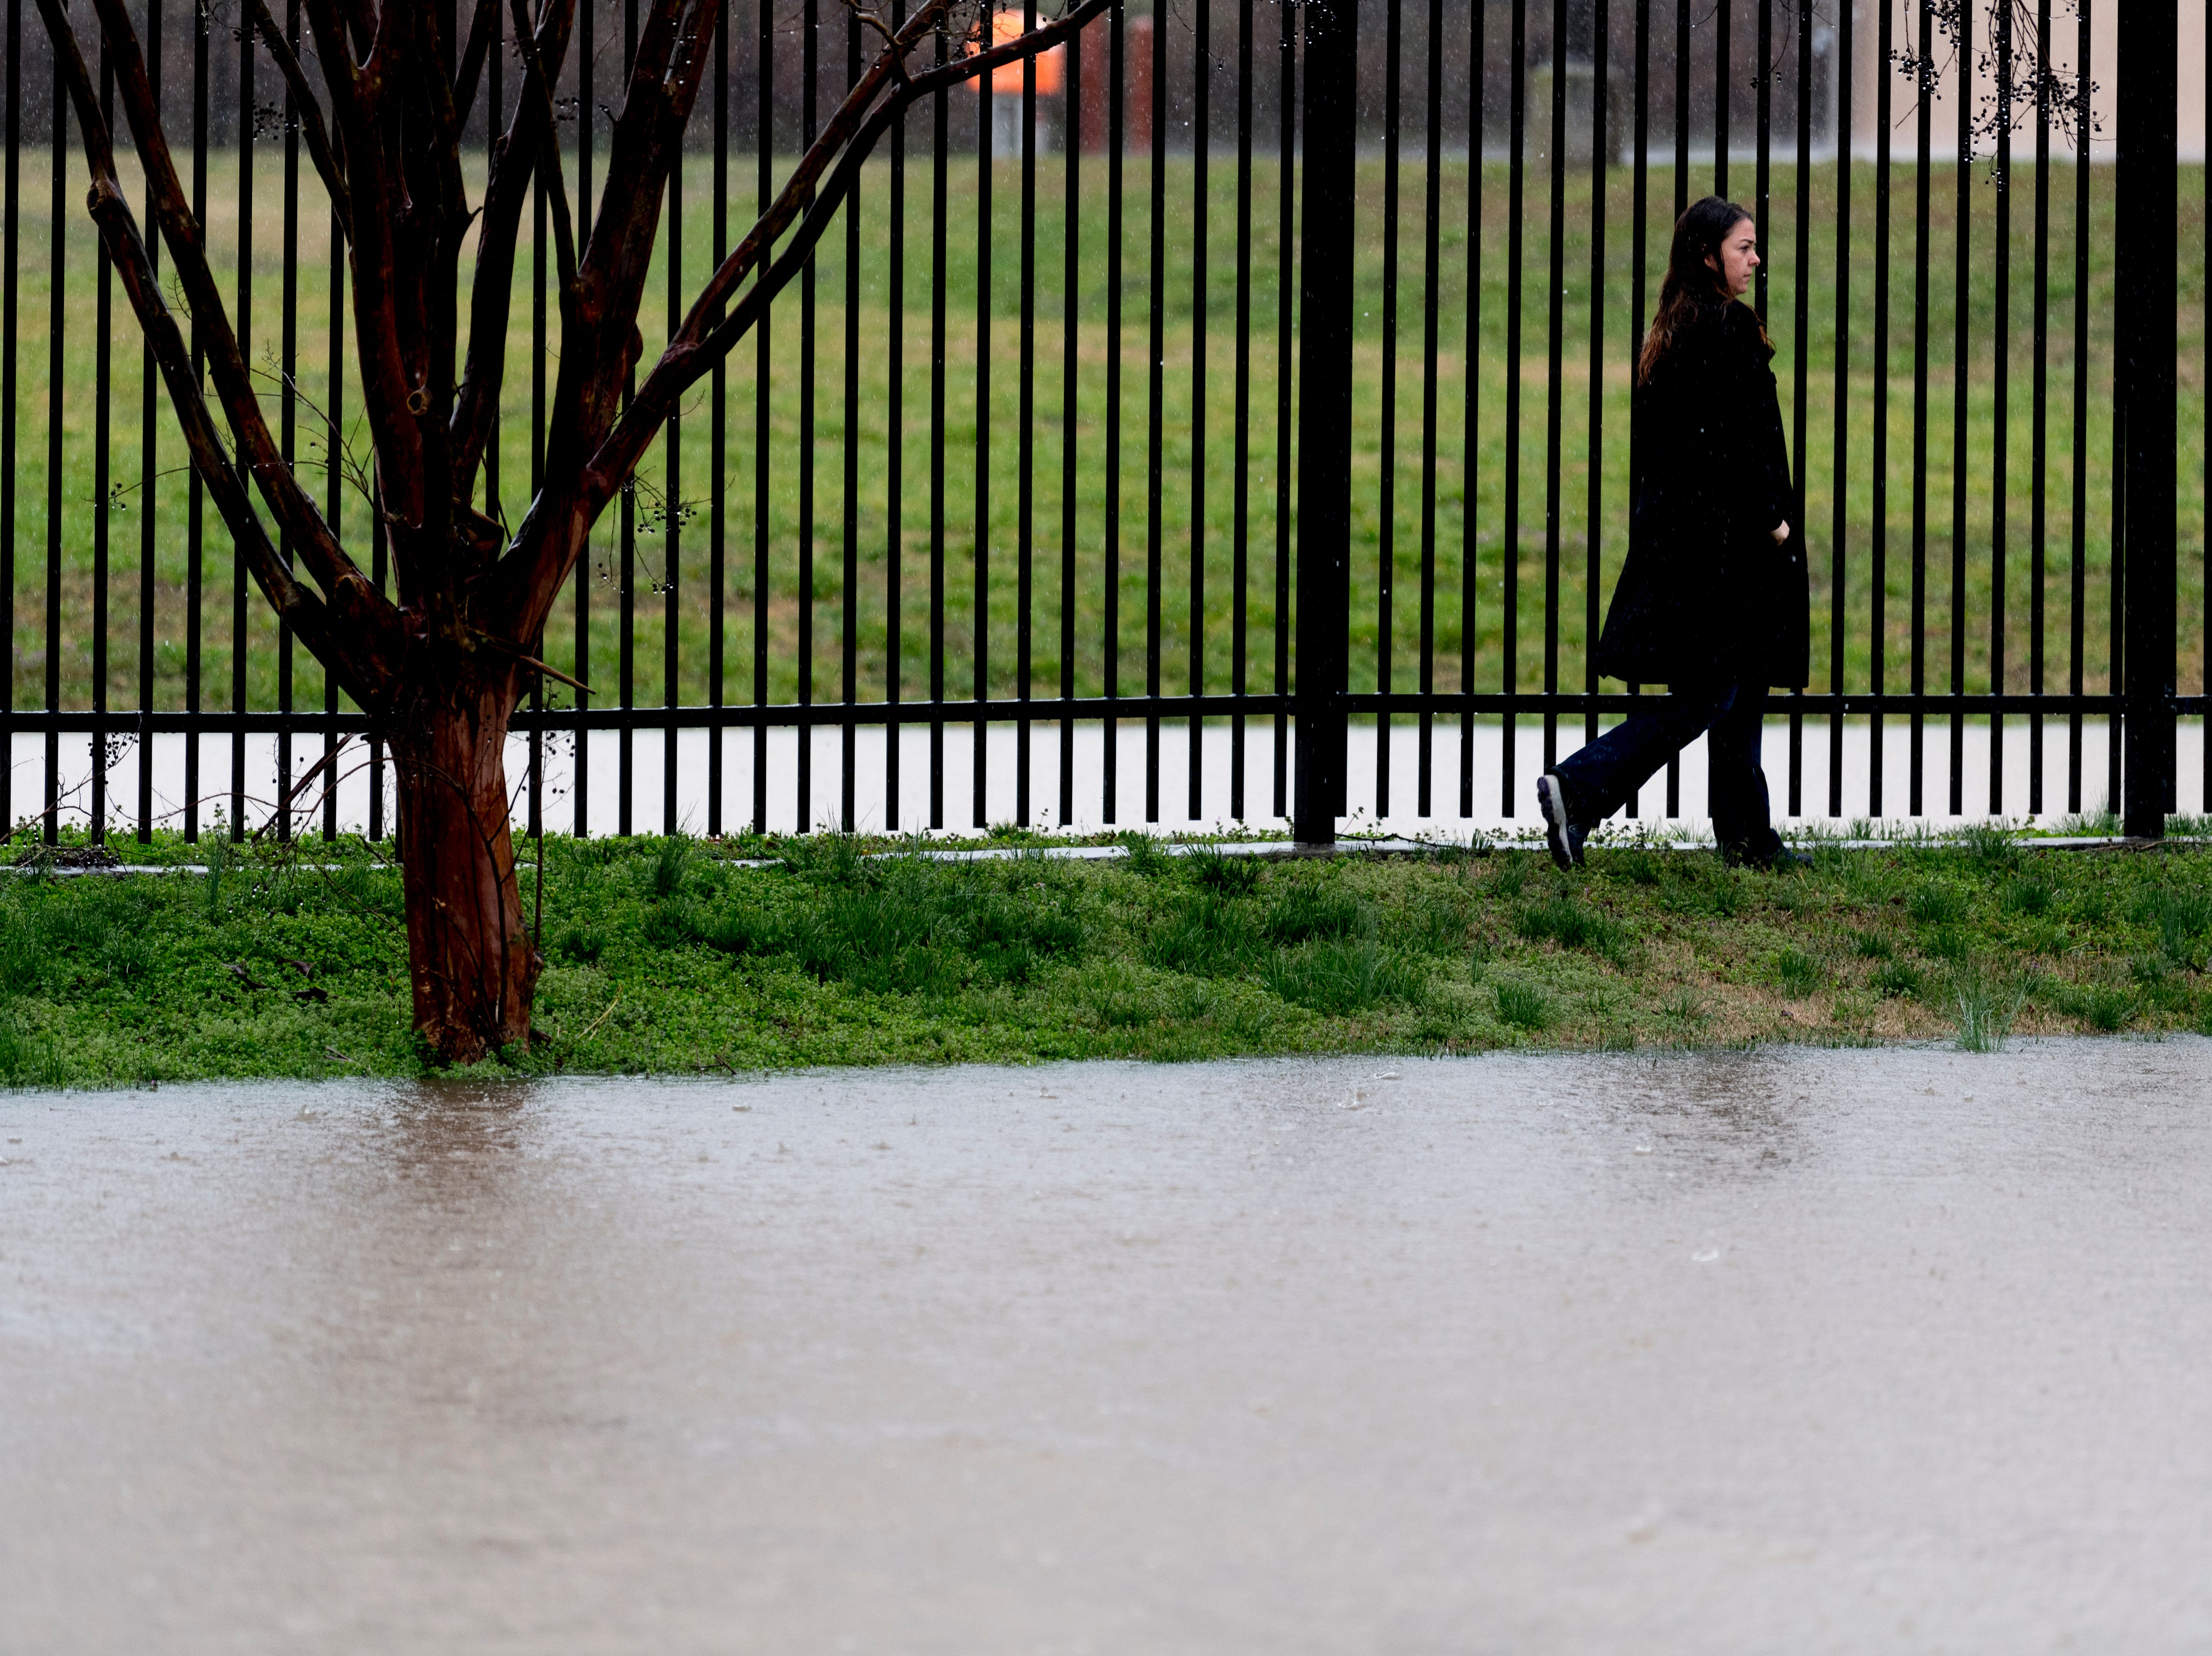 A pedestrian walks along a flooded portion of North 6th Ave. during a heavy rainstorm in Knoxville, Tennessee on Saturday, February 23, 2019. The Knoxville area could see between 2 and 3 inches through the weekend.